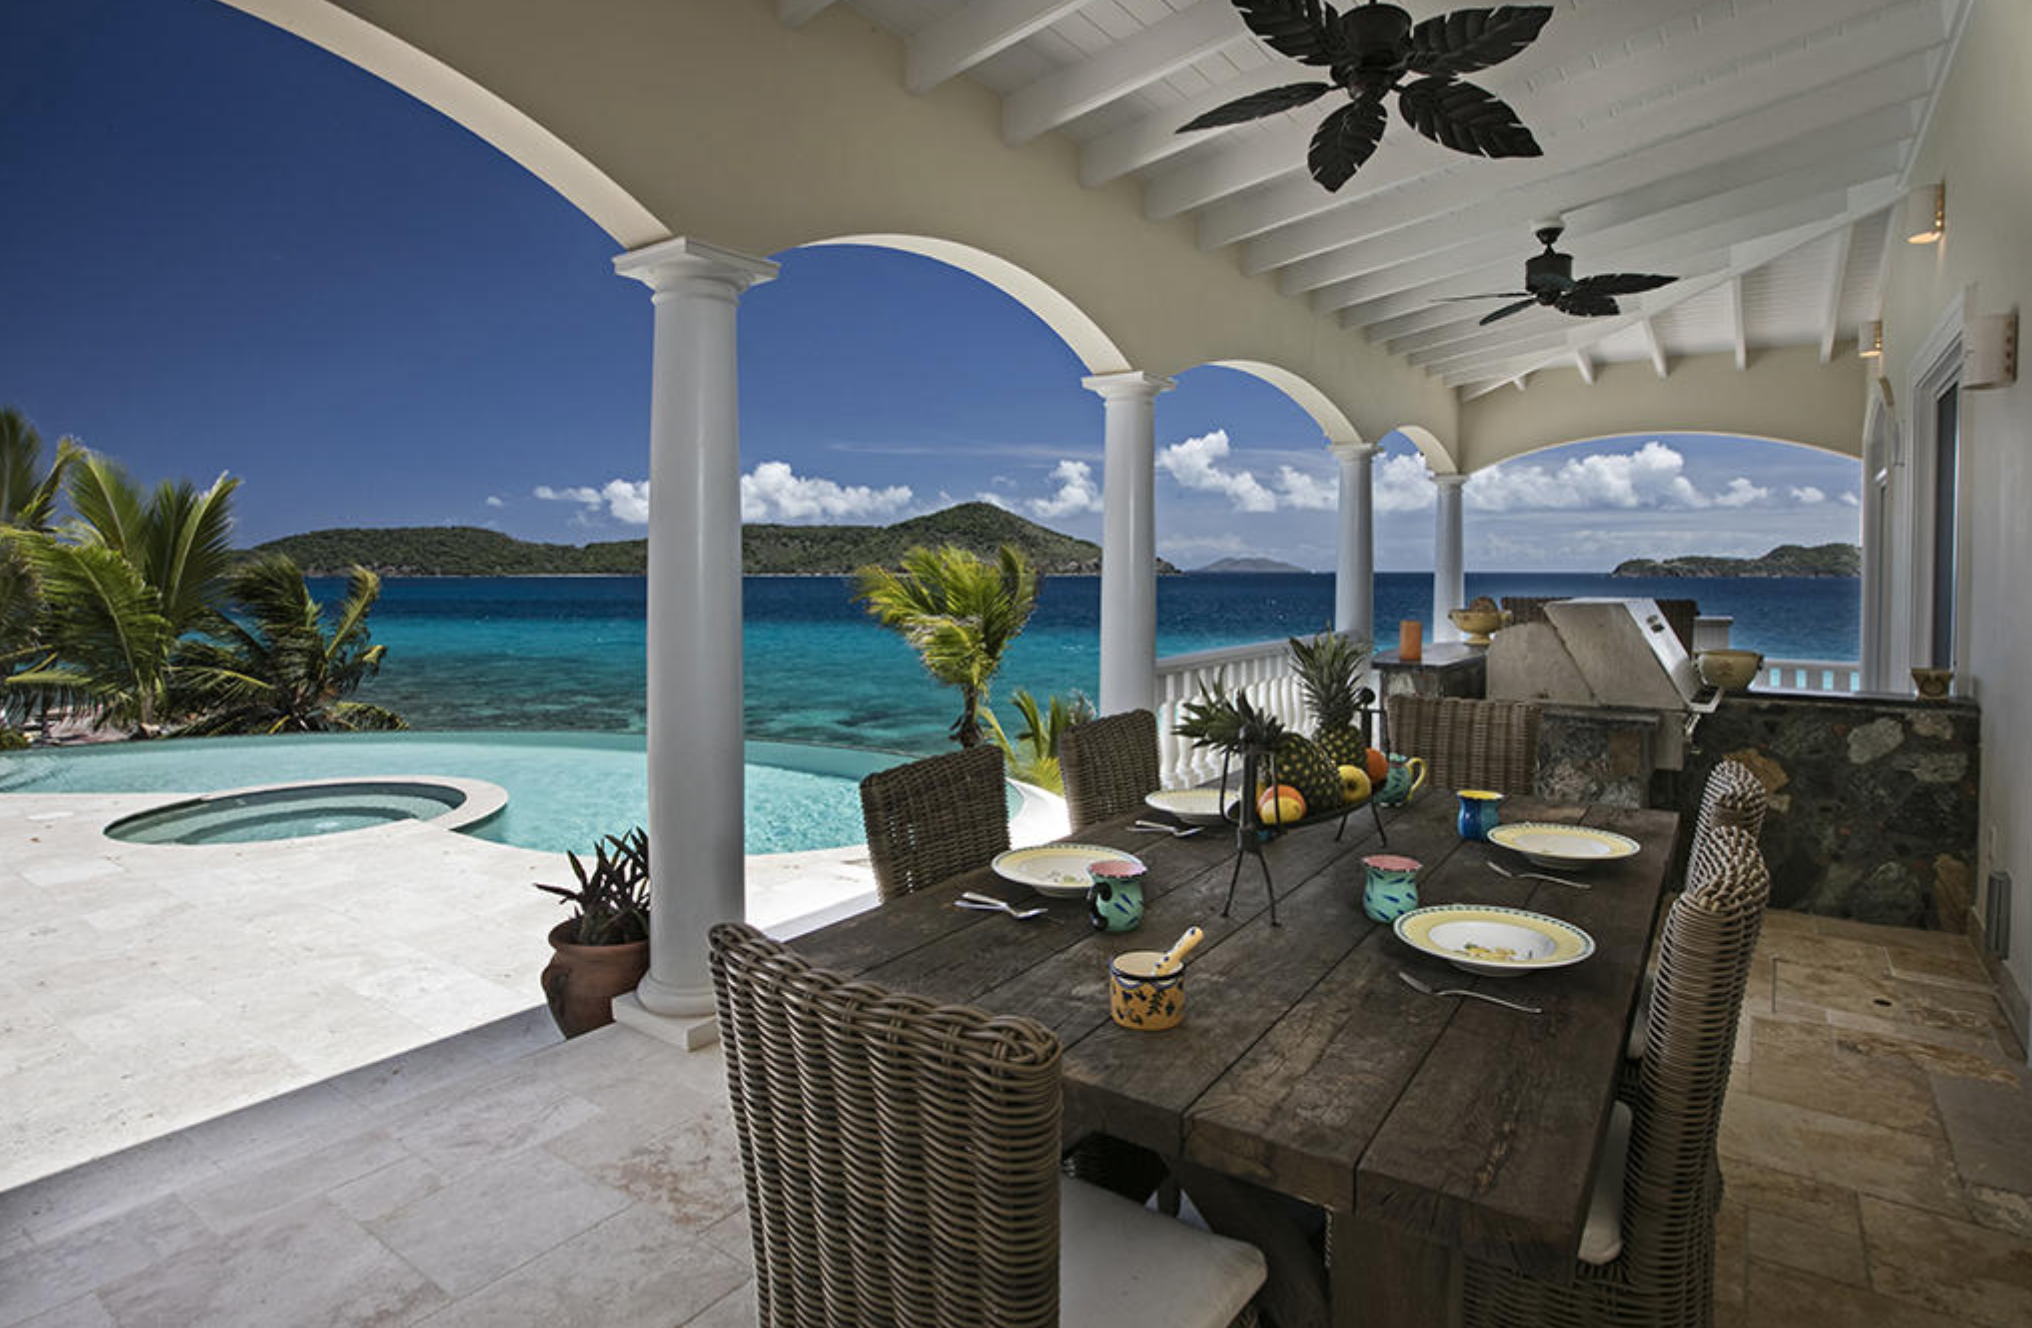 Pool side dining right on ocean